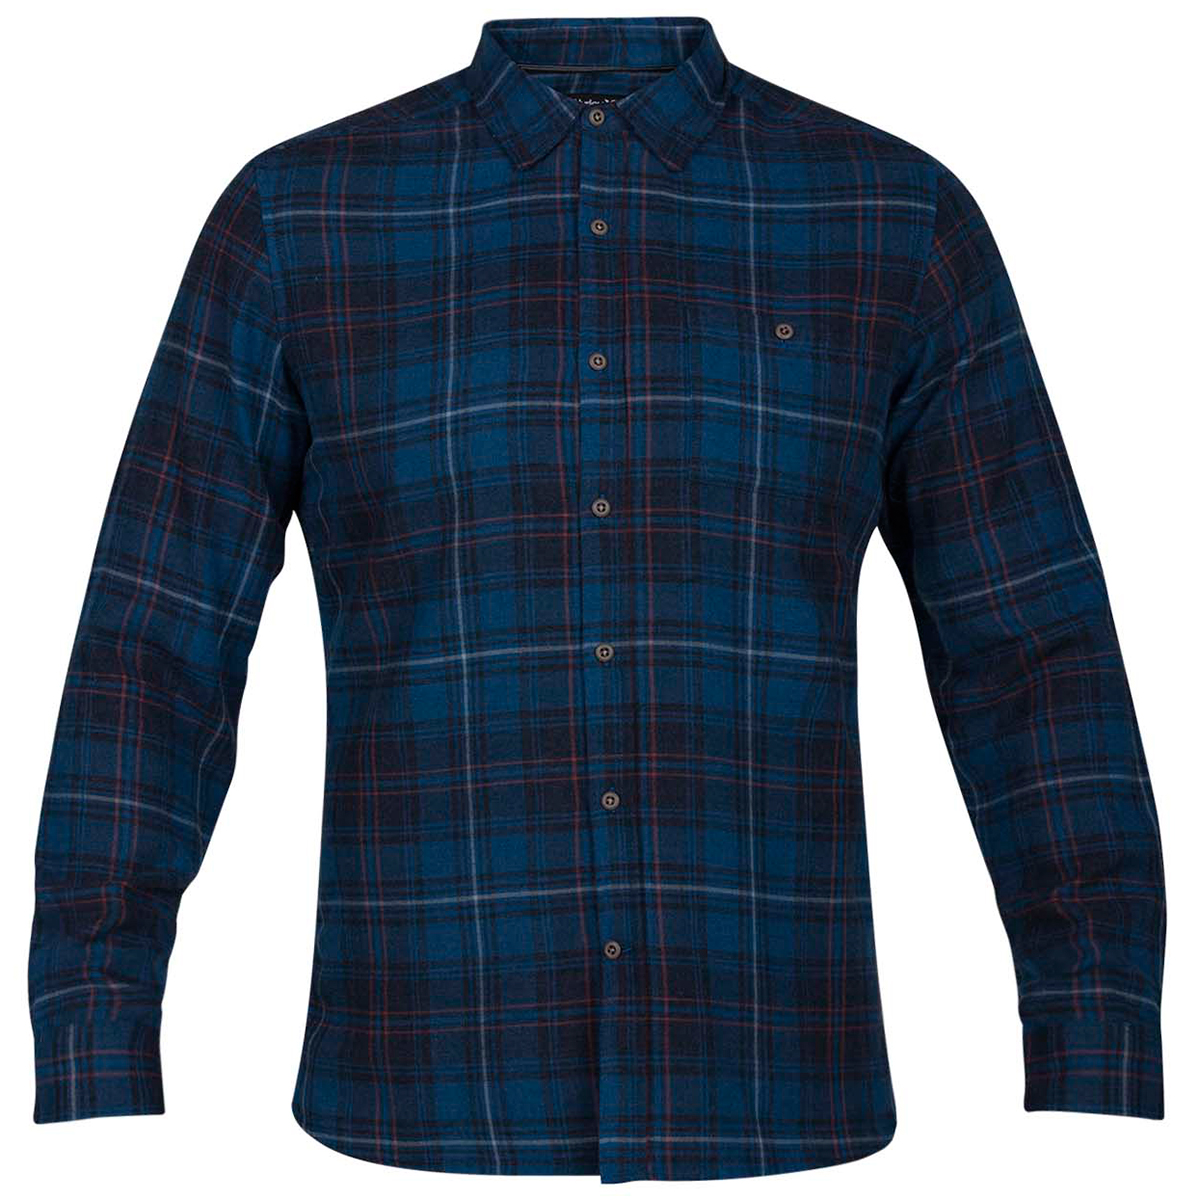 Hurley Guys' Kurt Long-Sleeve Shirt - Blue, L